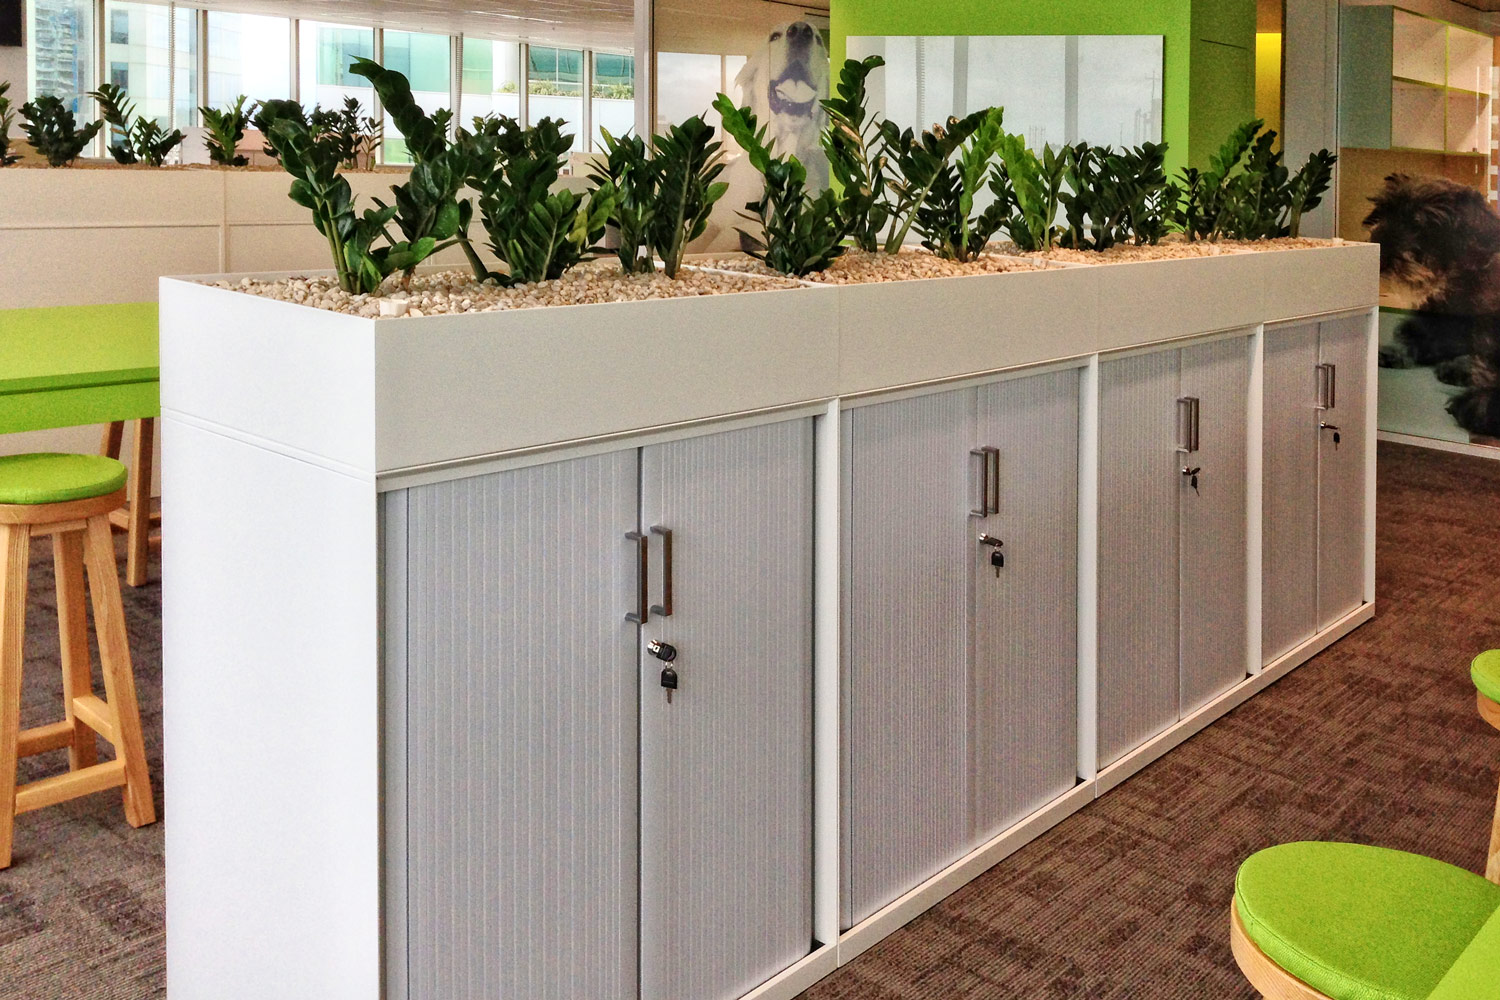 Smart tambour storage with planter boxes